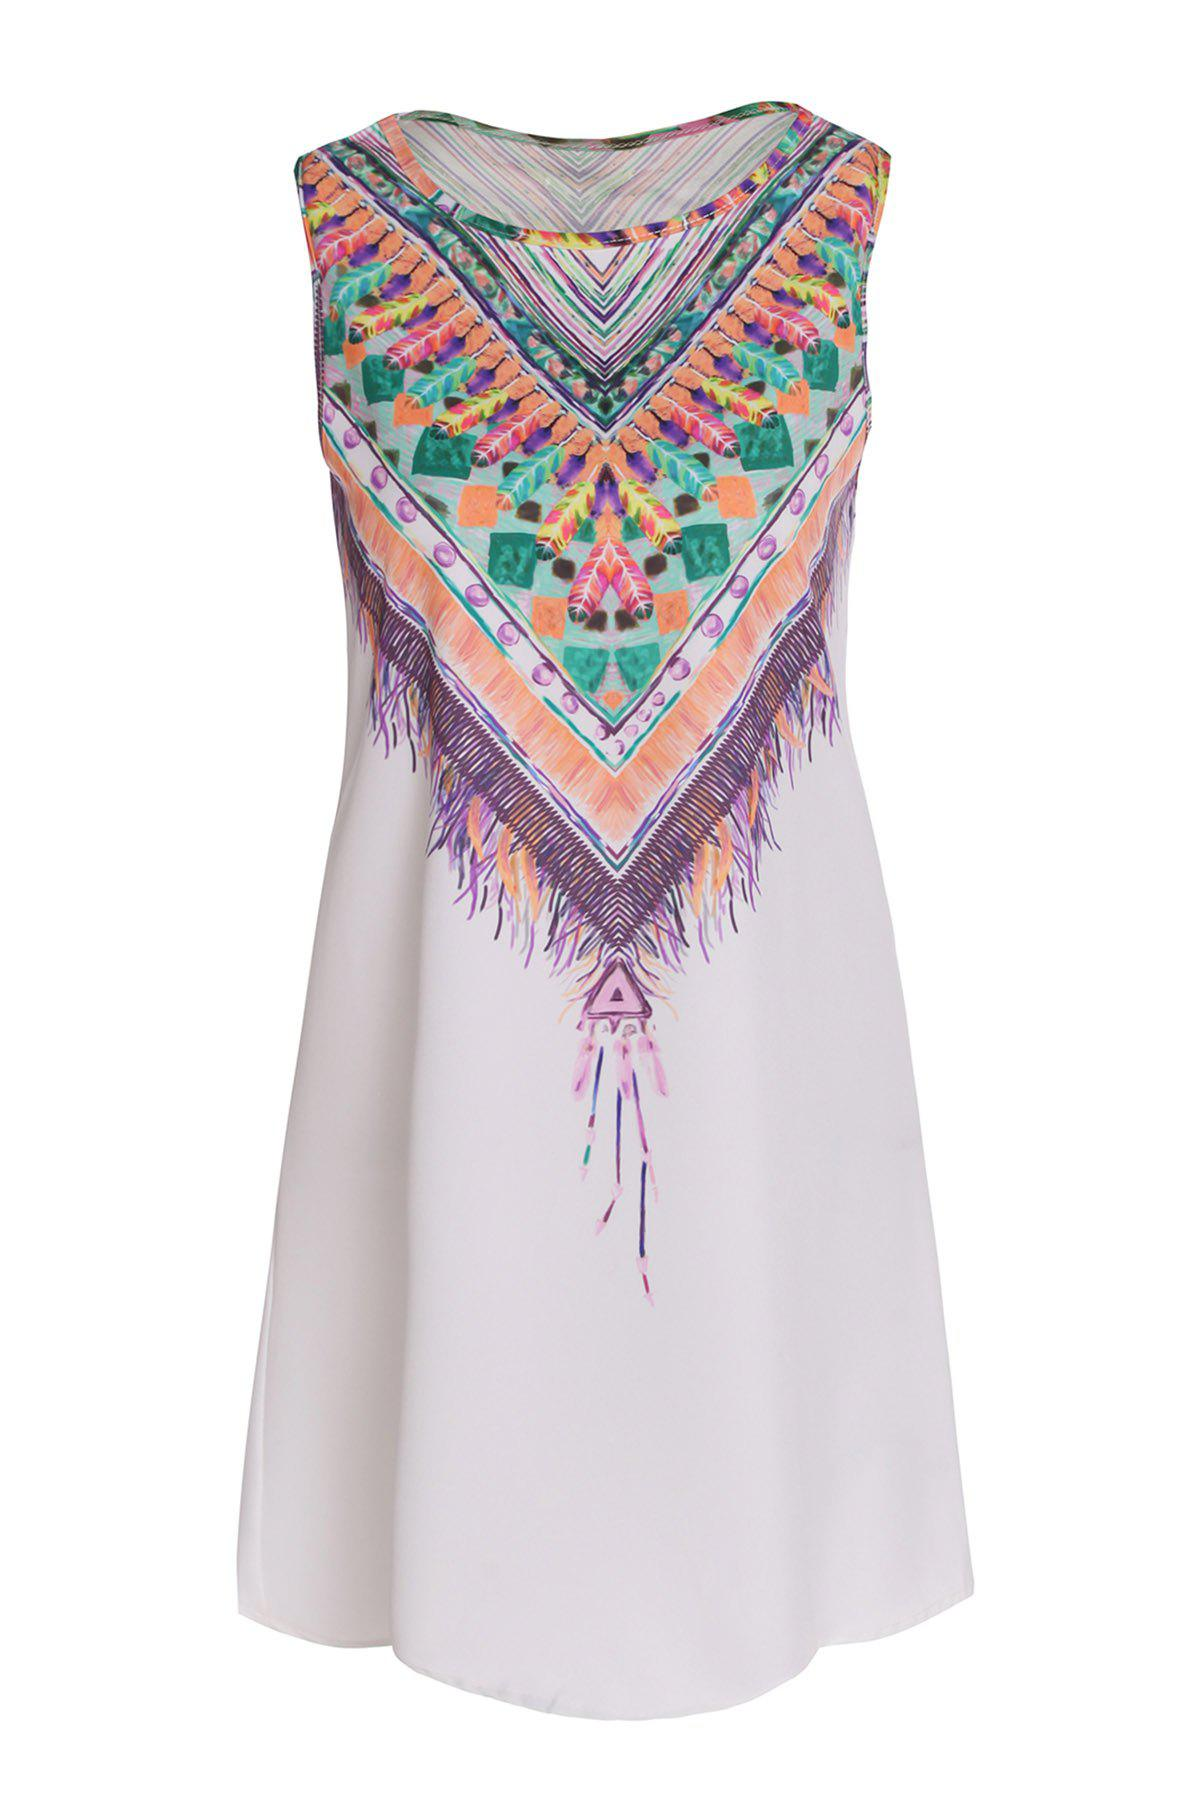 Ethnic Style Sleeveless Scoop Neck Printed Women's Dress - WHITE S